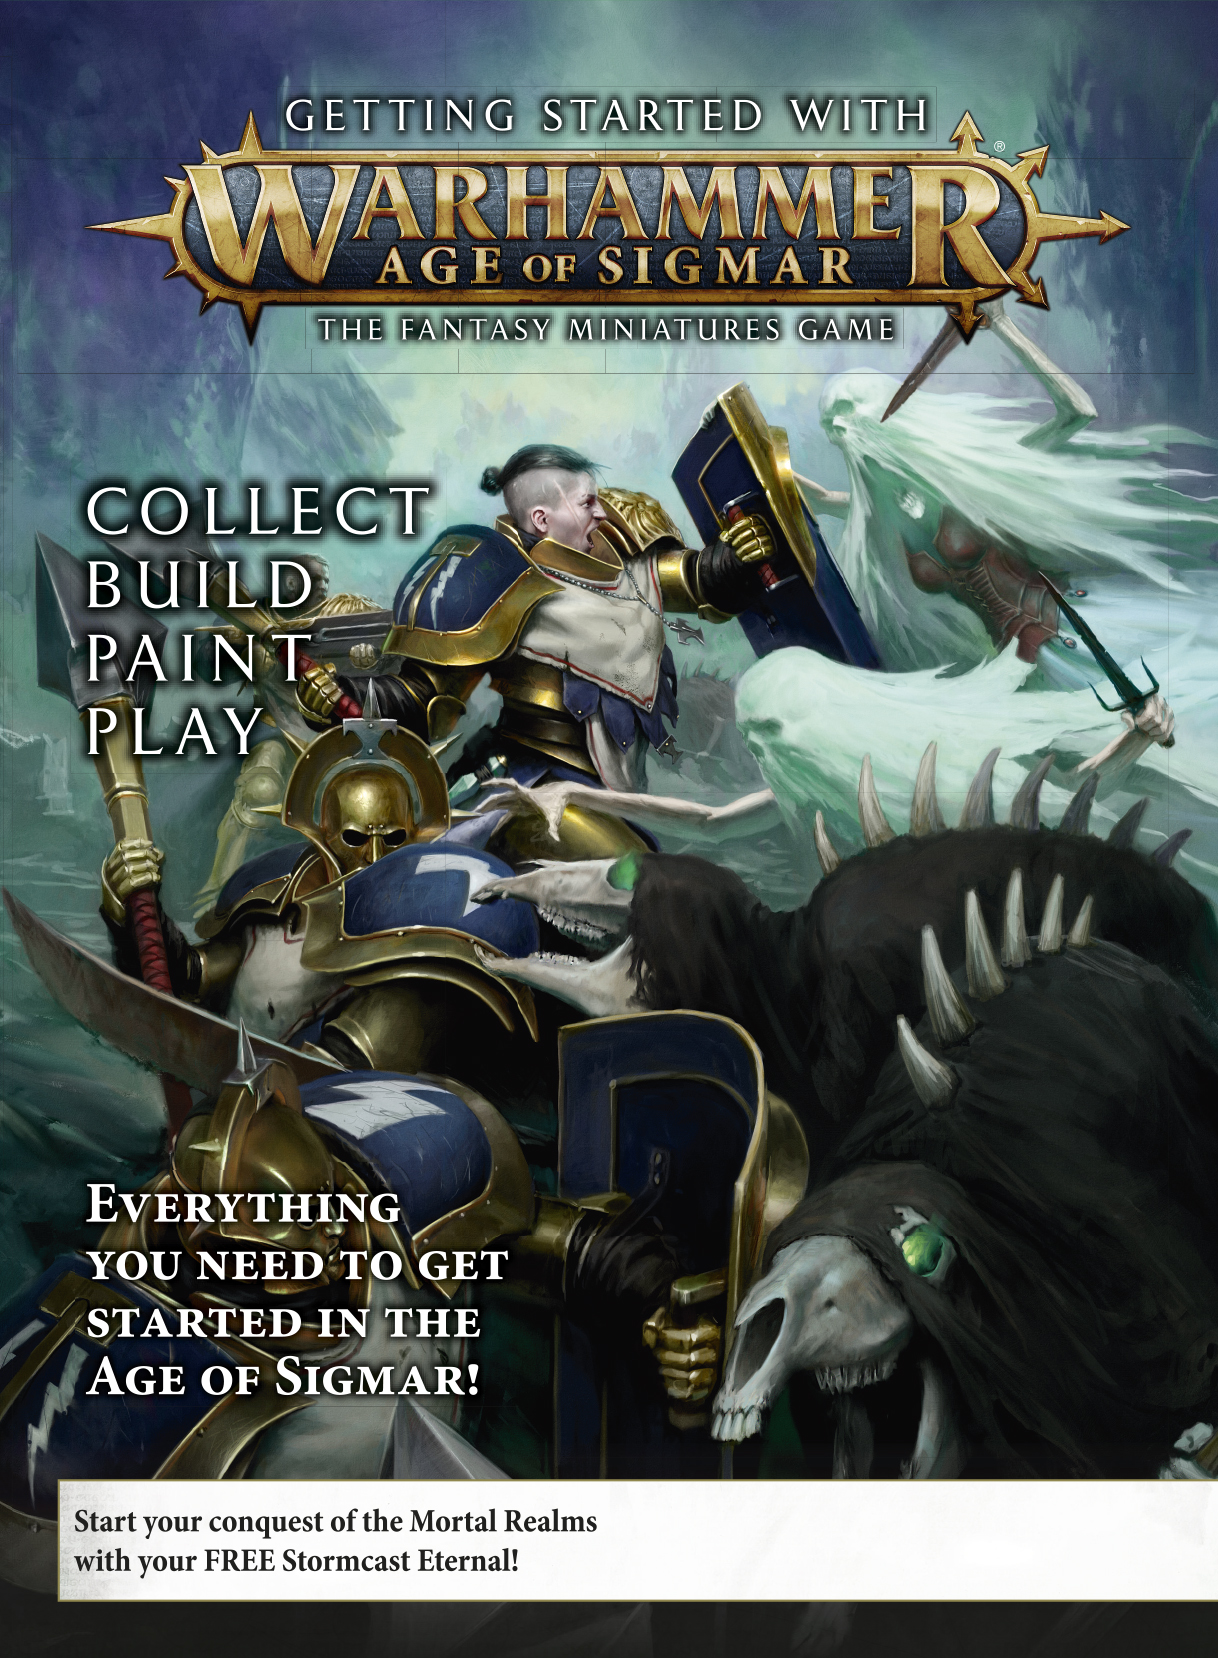 Warhammer Age of Sigmar Getting started with Warhammer age of Sigmar -aloituspakkaus